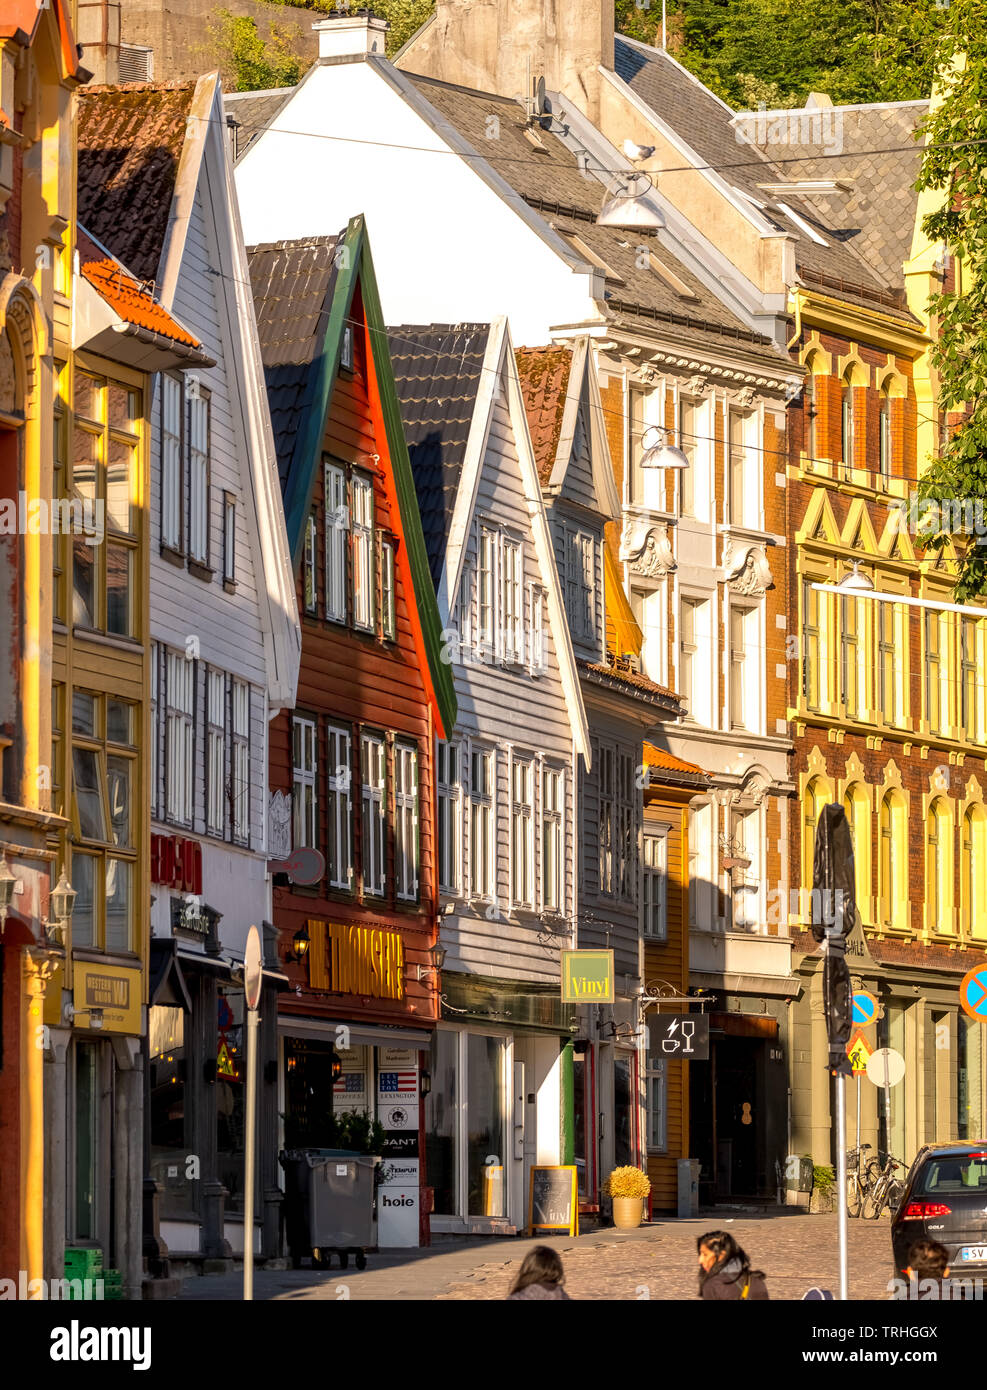 Tourists walk in the harbor area of Bryggen in front of an impressive wooden houses front, with shops, mountains, Hordaland, Norway, Scandinavia, Euro - Stock Image